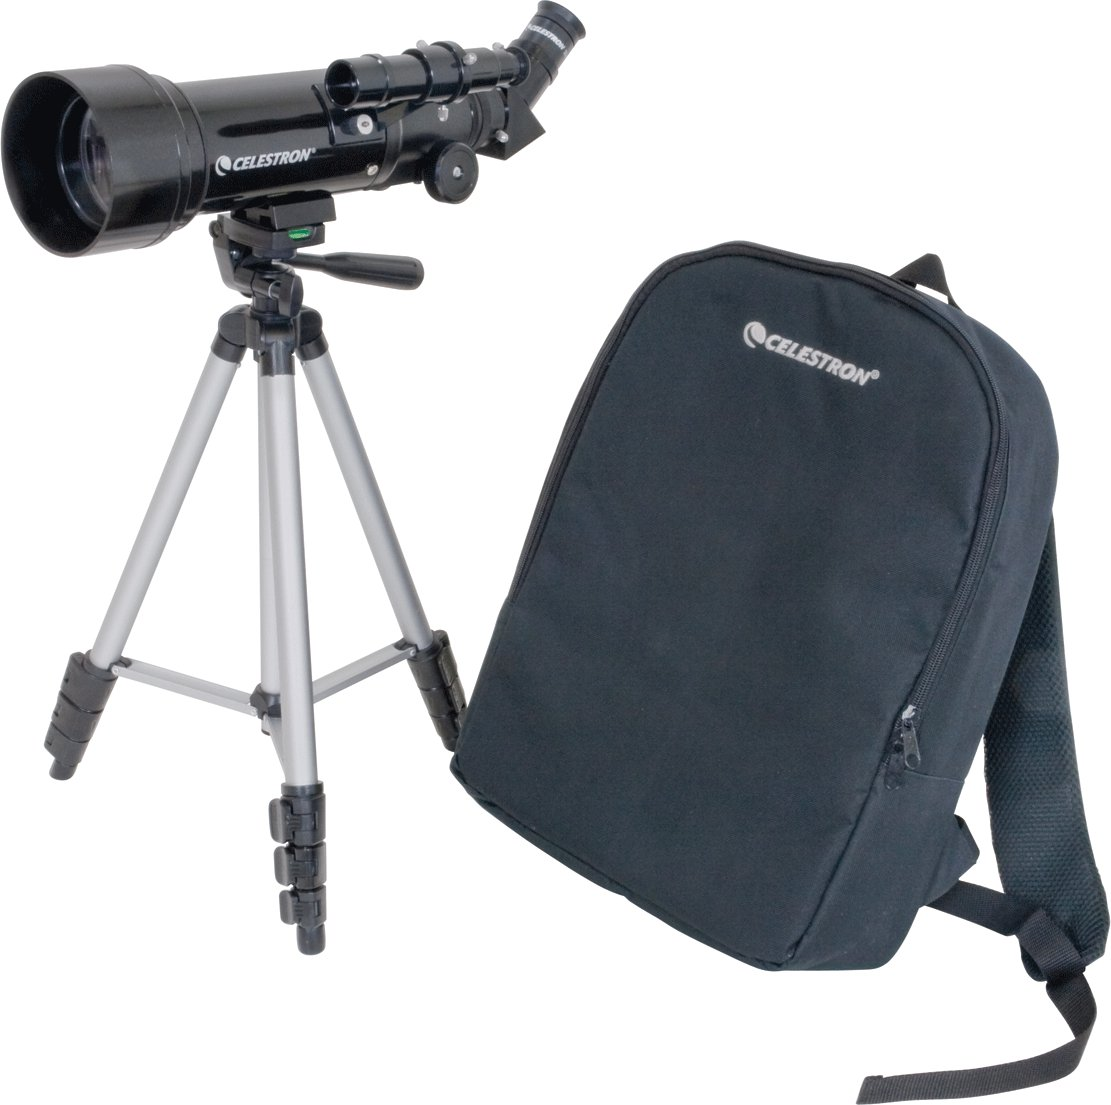 Can The Celestron  Mm Travel Scope Take Pictures